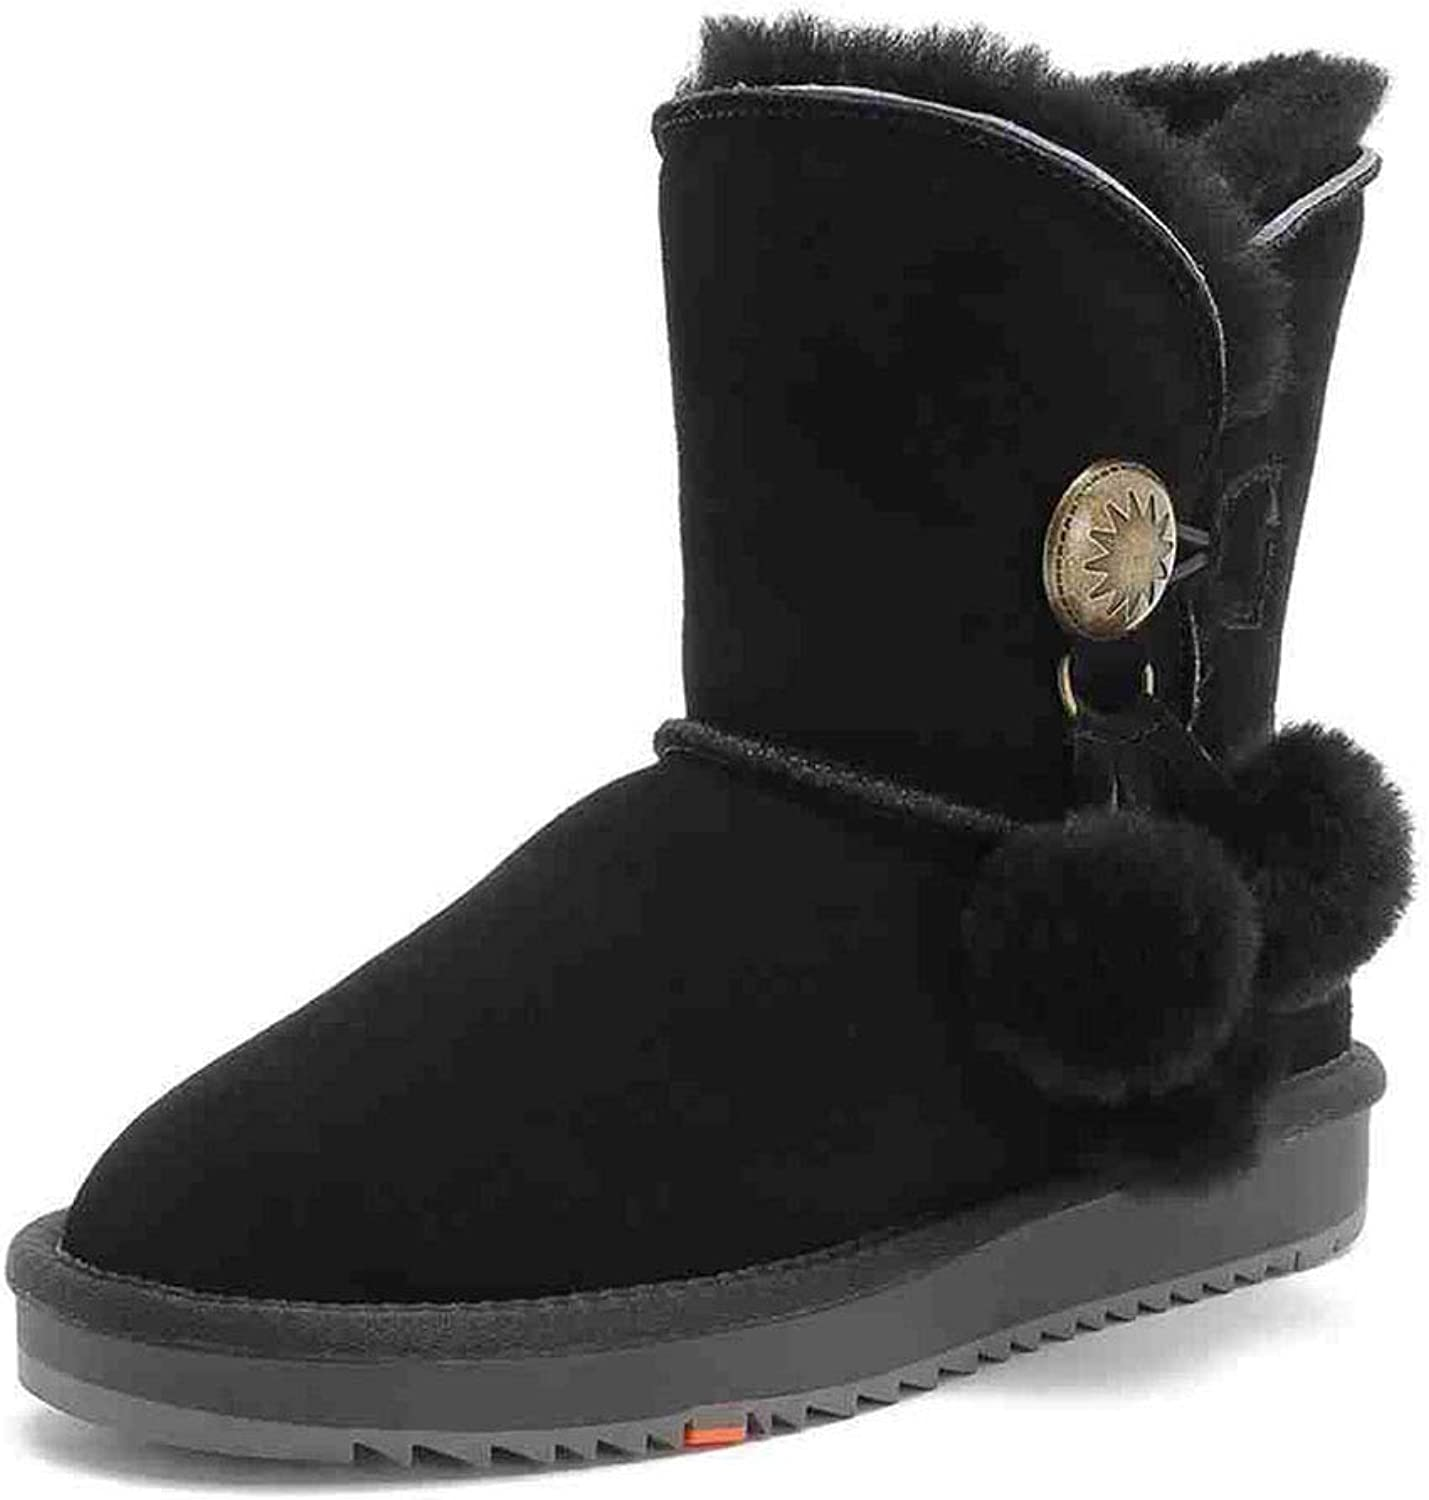 Hair Ball Warm Snow Boots Booties Women's shoes Flat Snow Boots Casual Boots Warm Short Velvet Sneakers Casual Walking shoes shoes & Handbags (color   Black, Size   36)